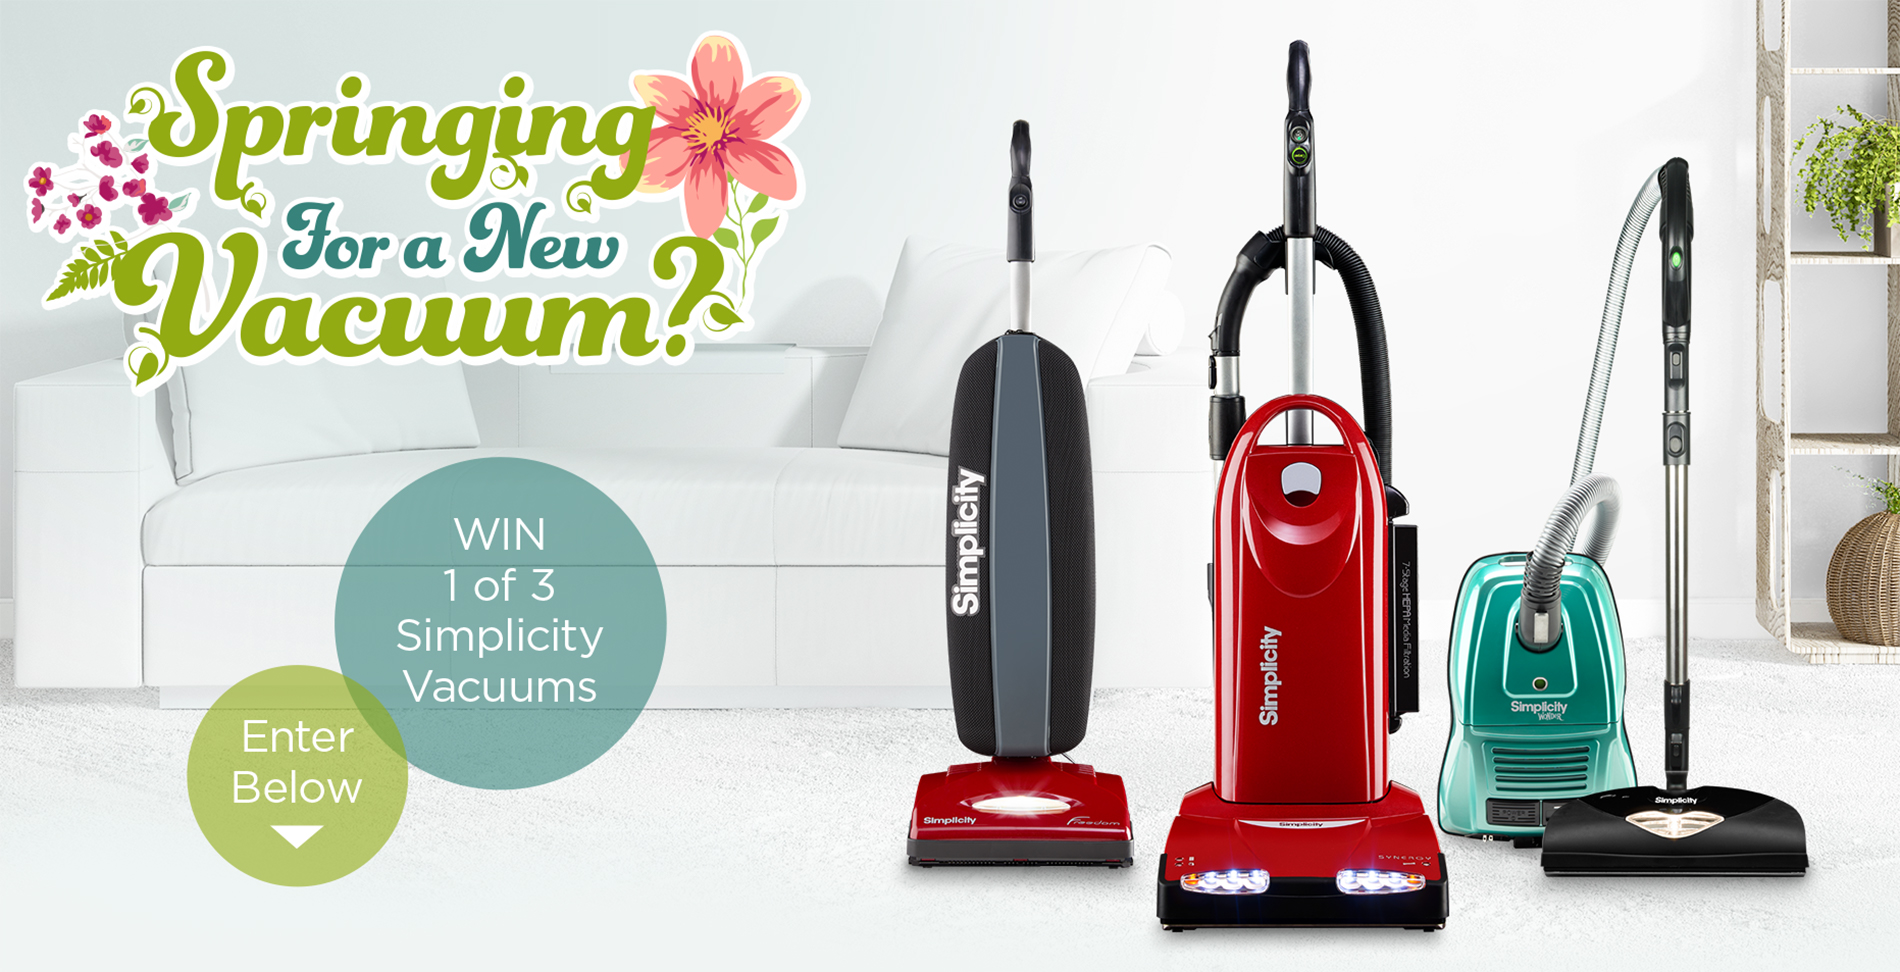 Springing for a new Vacuum? Win 1 of 3 Simplicity Vacuums! Enter Below!